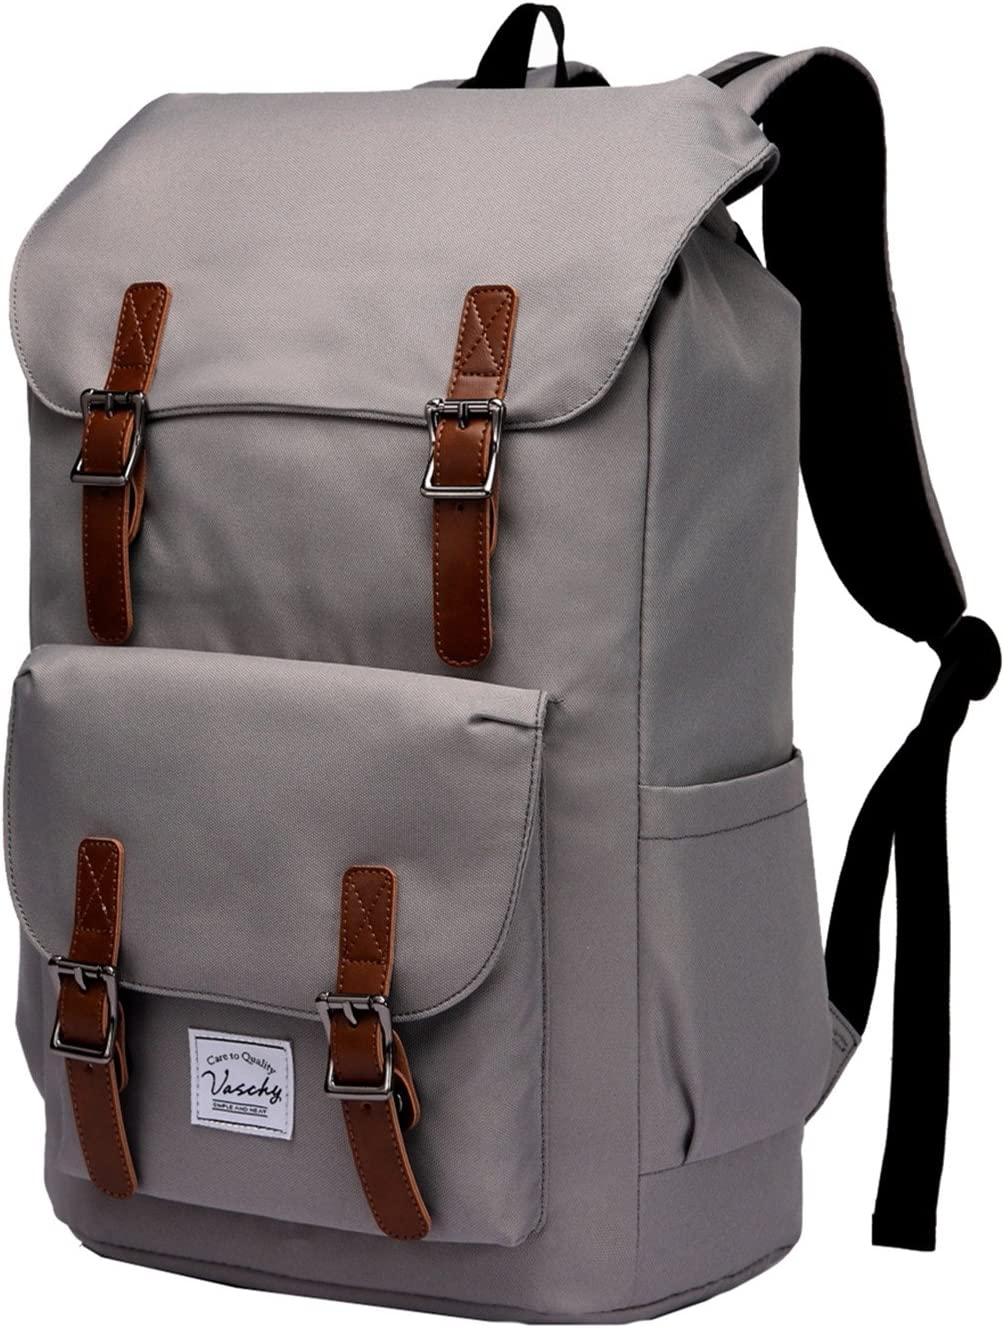 Laptop Backpack for Men,Vaschy Water Resistant School Bookbag College Rucksack Daypack for 15.6in Laptop Gray